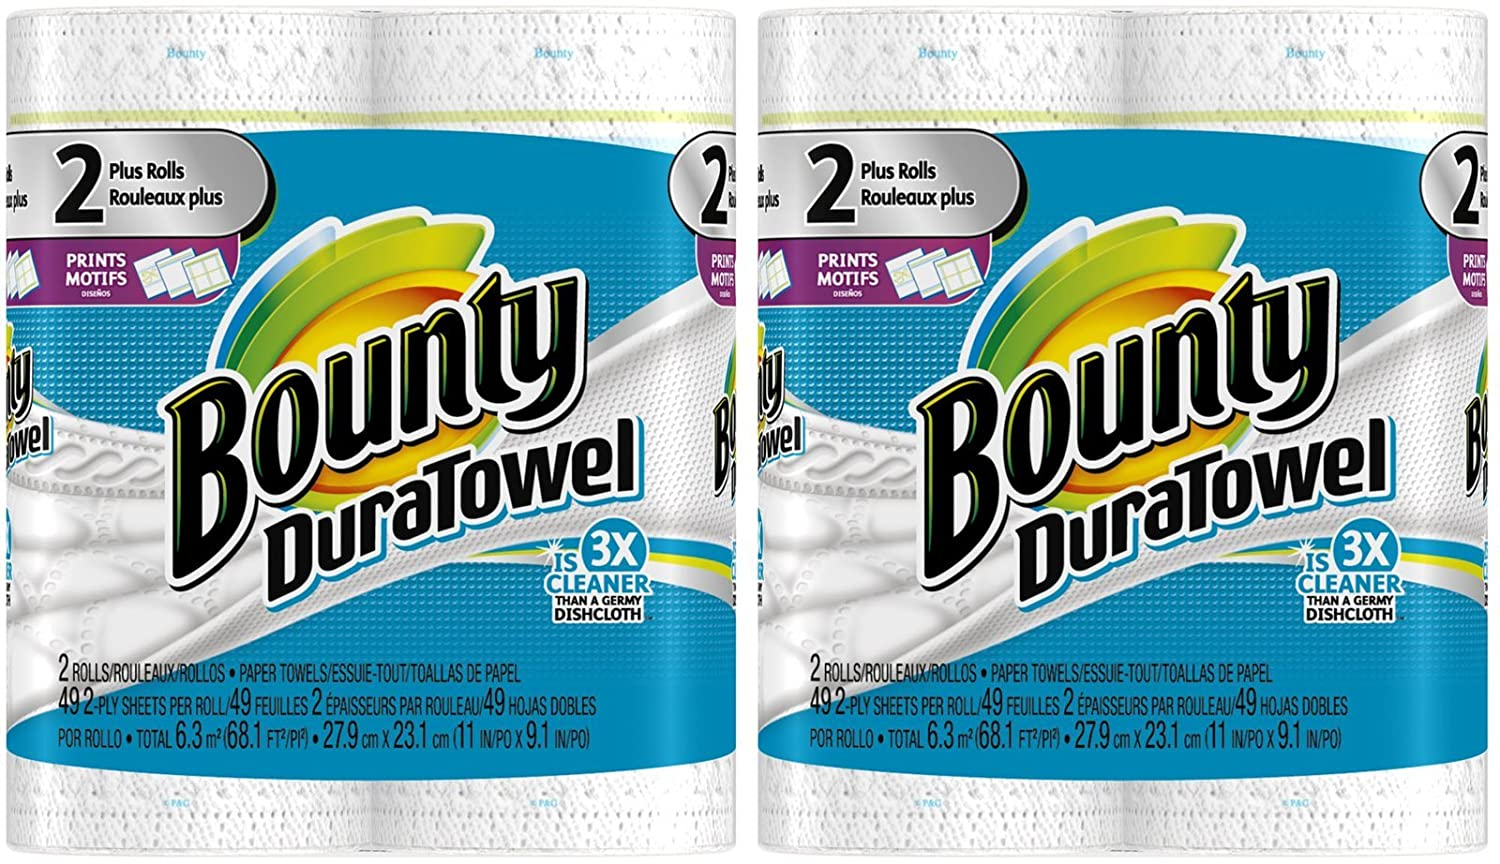 Amazon.com: Bounty DuraTowel Paper Towels, Prints, King Roll - 4 pk: Health & Personal Care